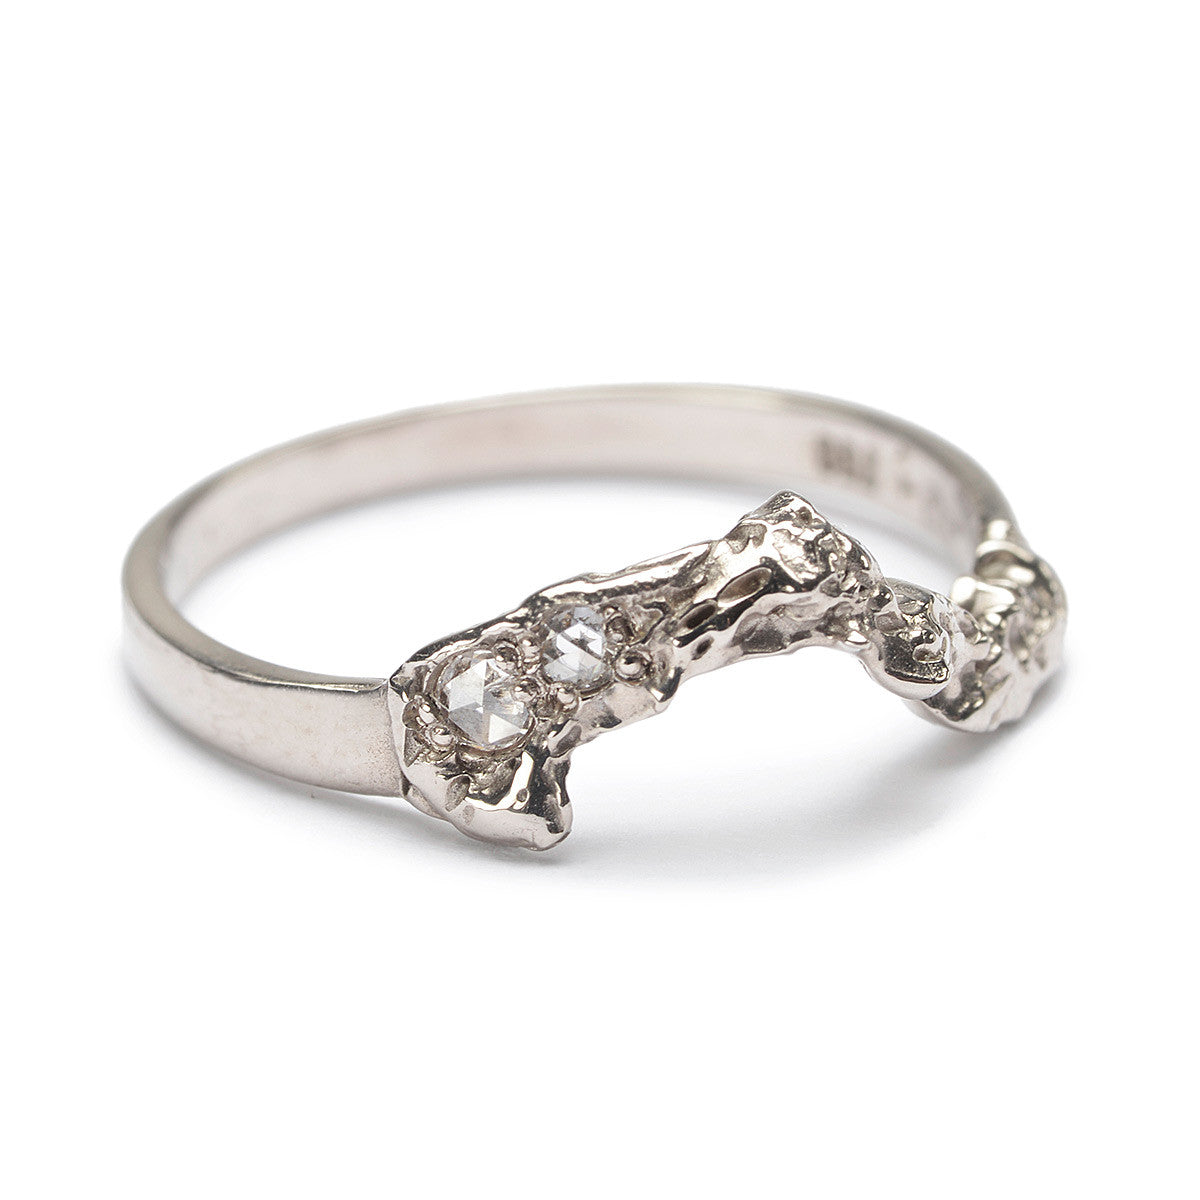 pricescope rings s julia blog whats what your style carey engagement mariah ring celebrity